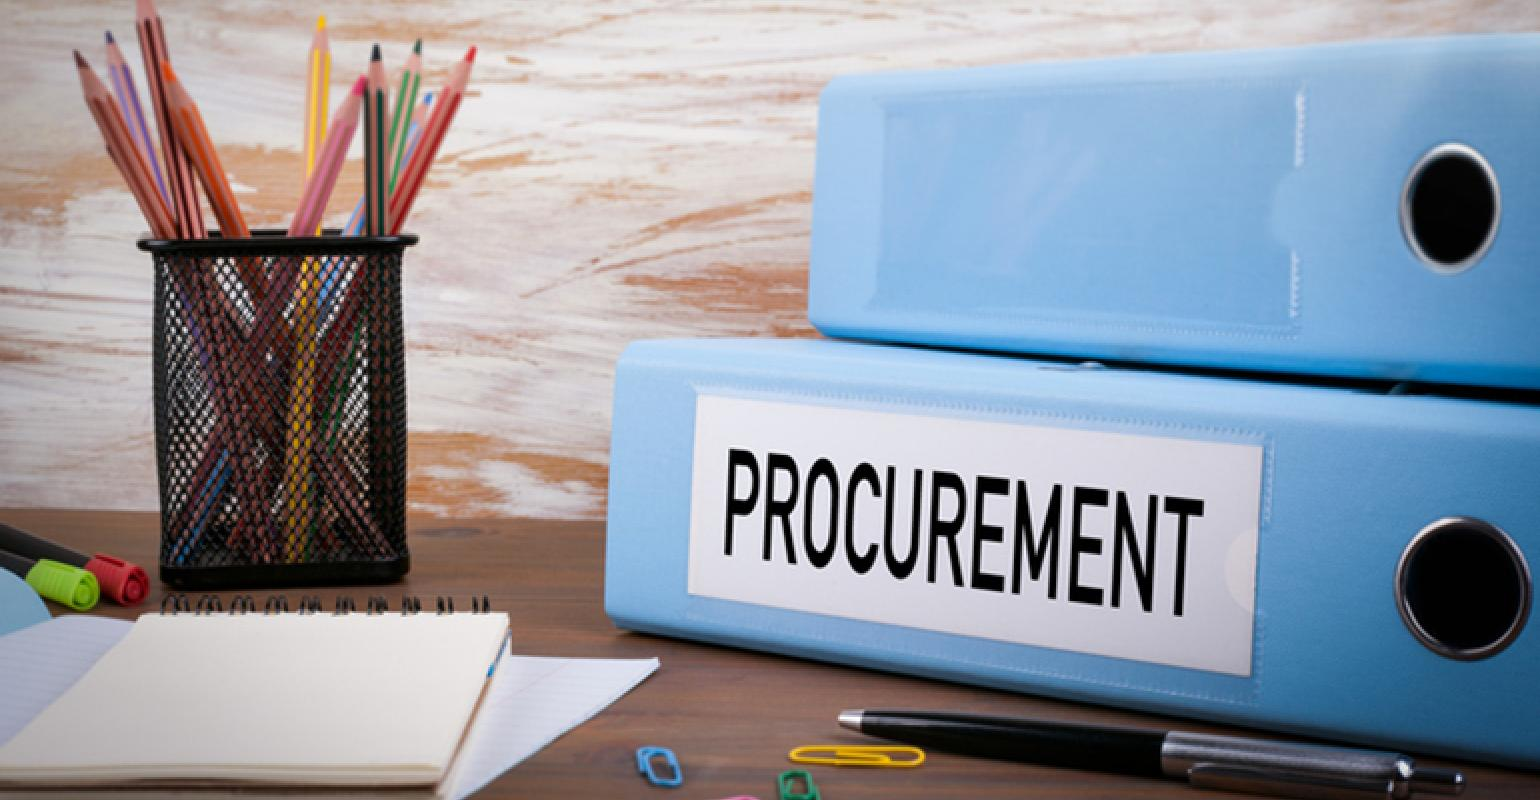 procurement-notebook